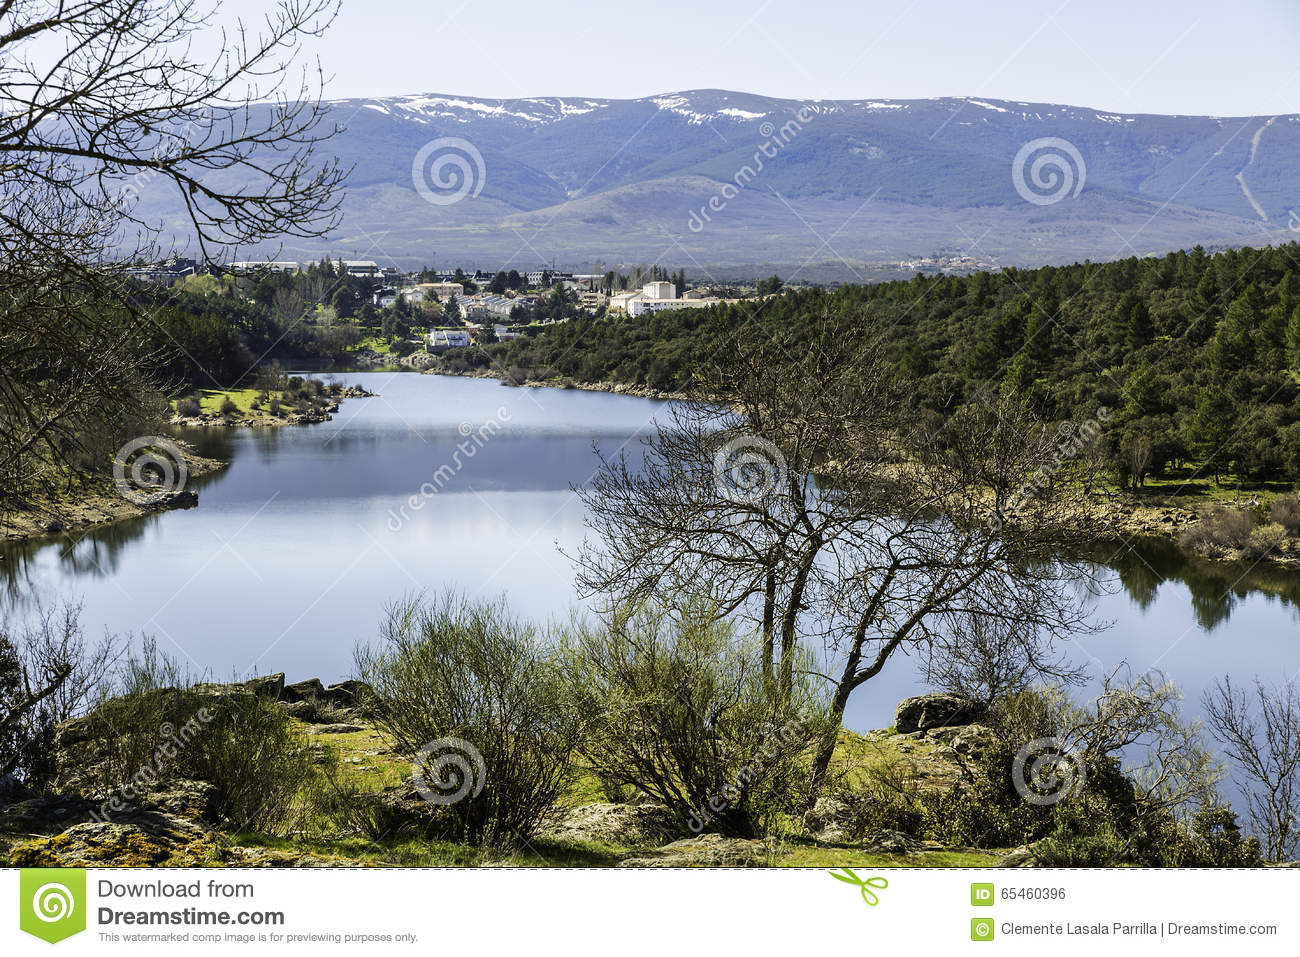 Countryside, View Of Lozoya River In Buitrago De Lozoya, Madrid.